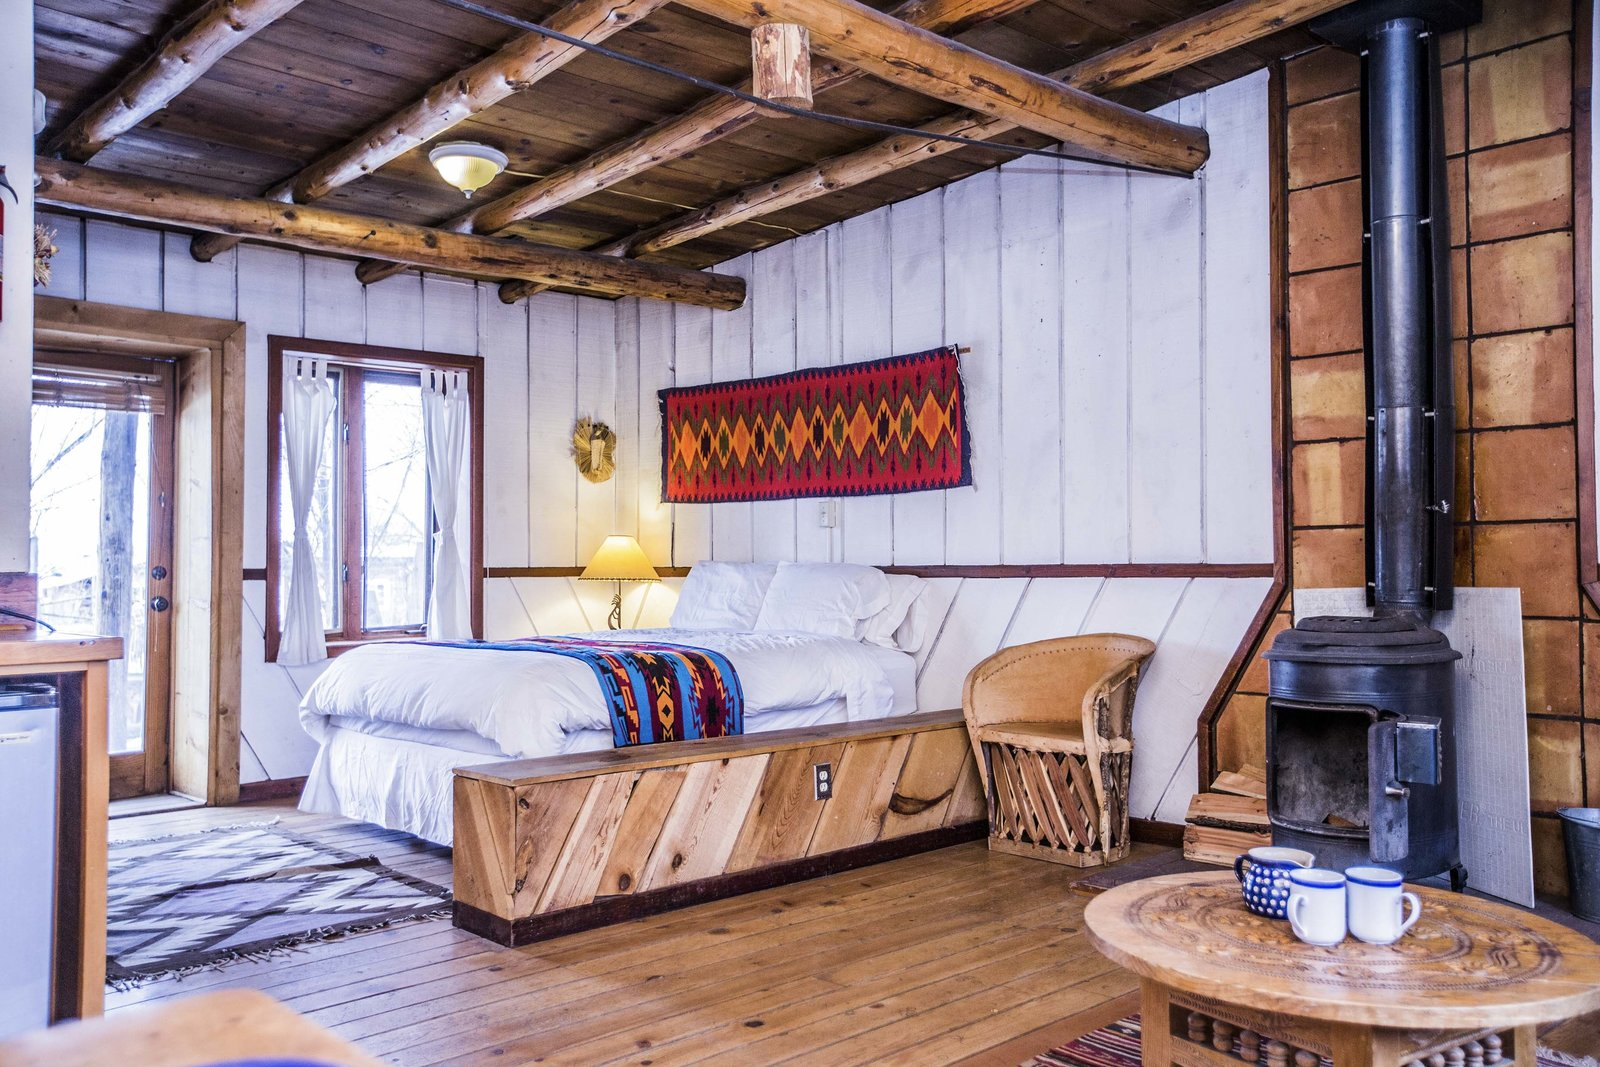 The Aldous Huxley cabin in New Mexico was once home to the English author and is today a nightly rental on Airbnb. The cabin is part of a larger retreat that includes another cabin visited by D. H. Lawrence.  Photo 10 of 13 in 6 Famous Writer's Retreats You Can Rent When You're Ready to Write That Novel